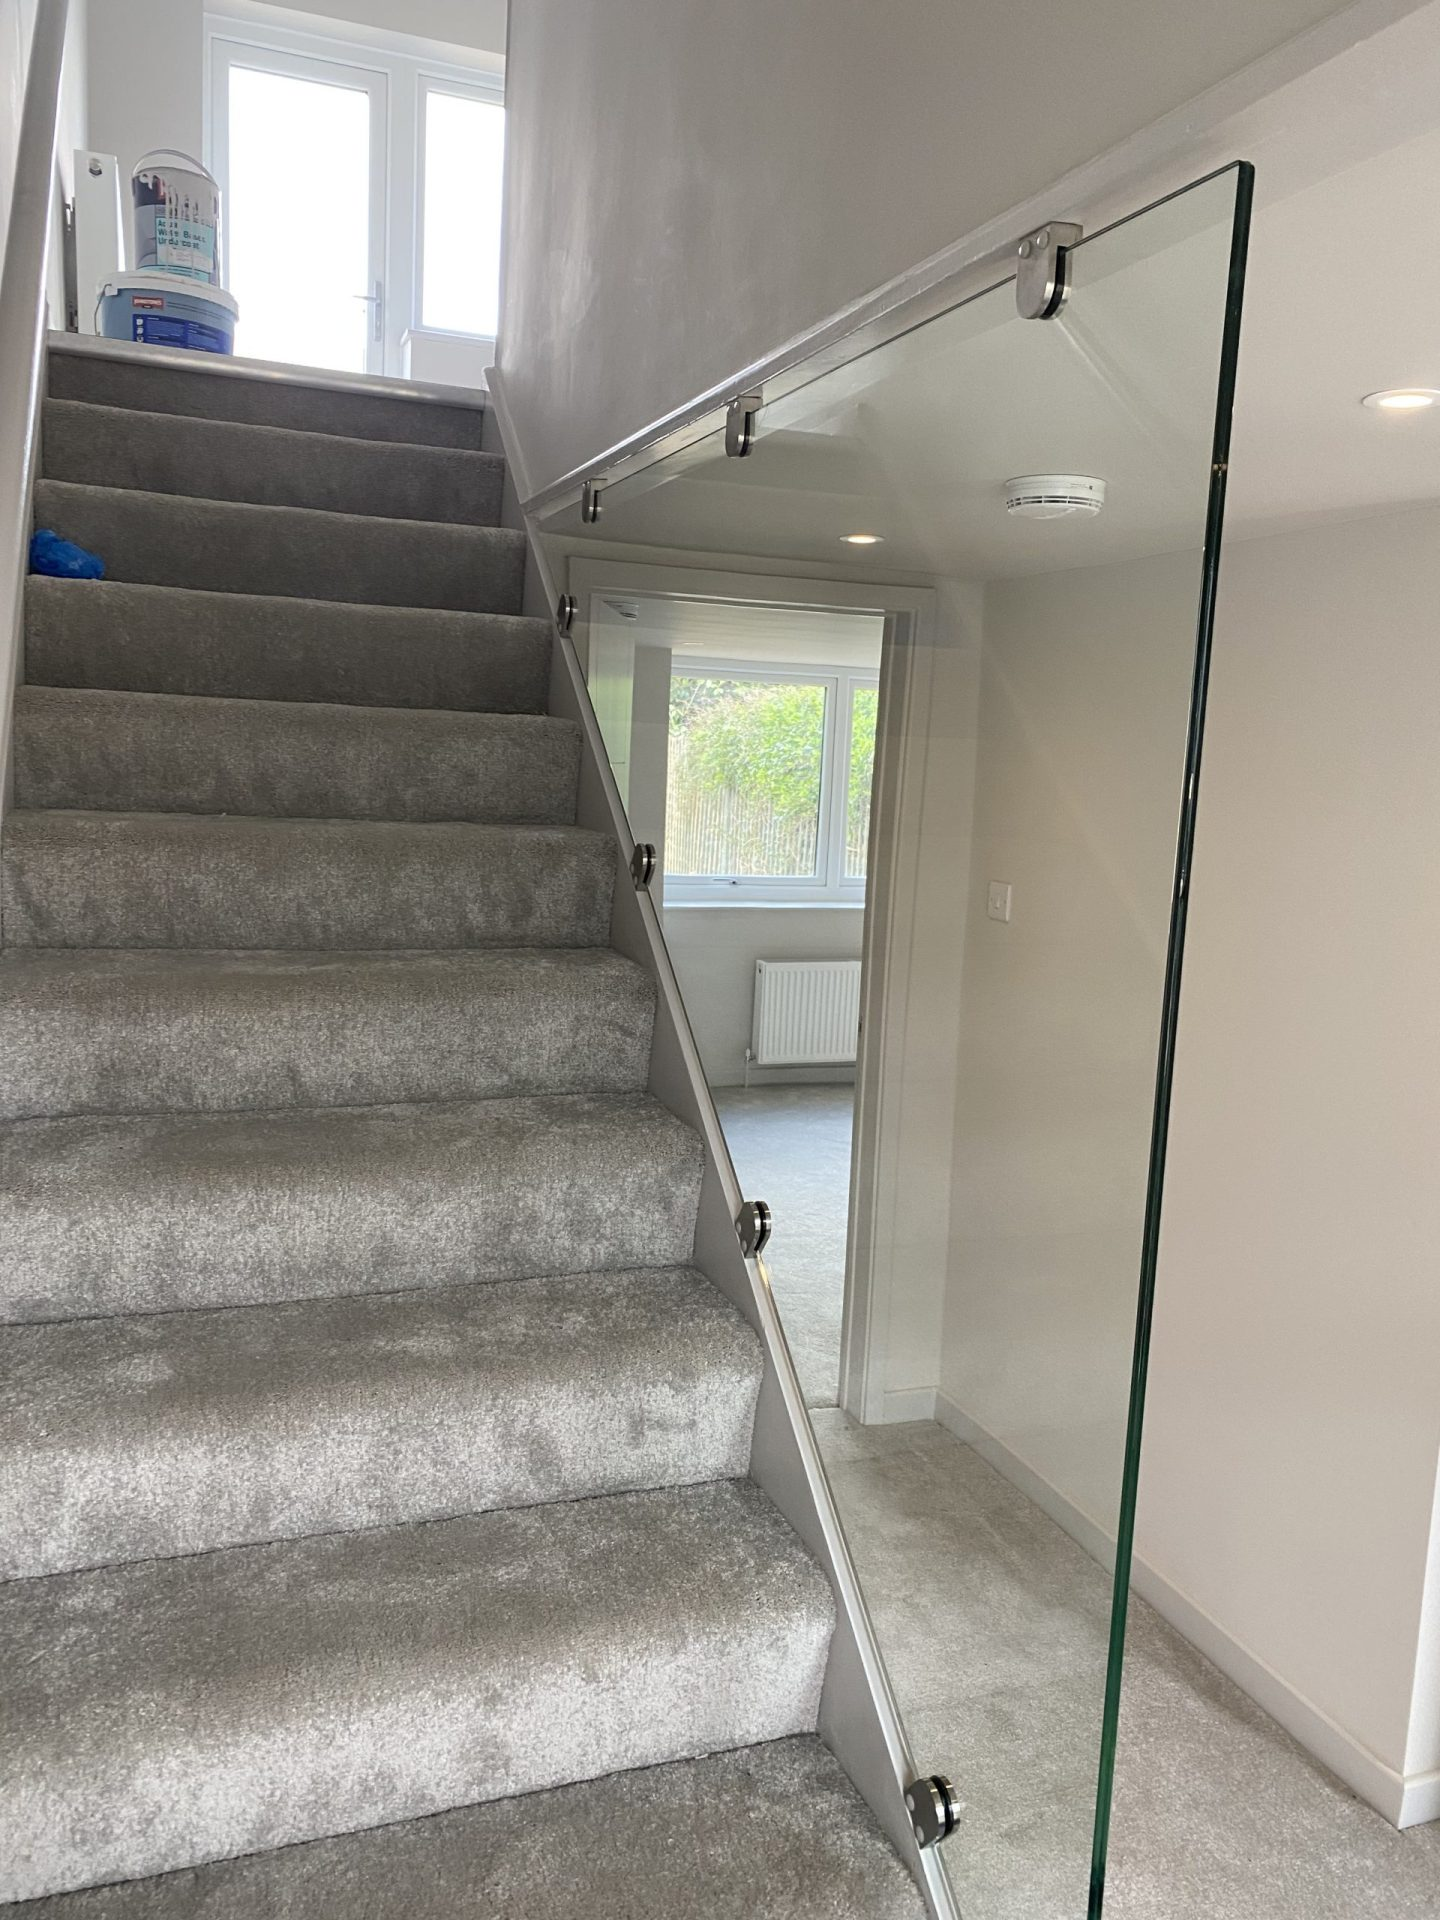 Full height infill panel to stair